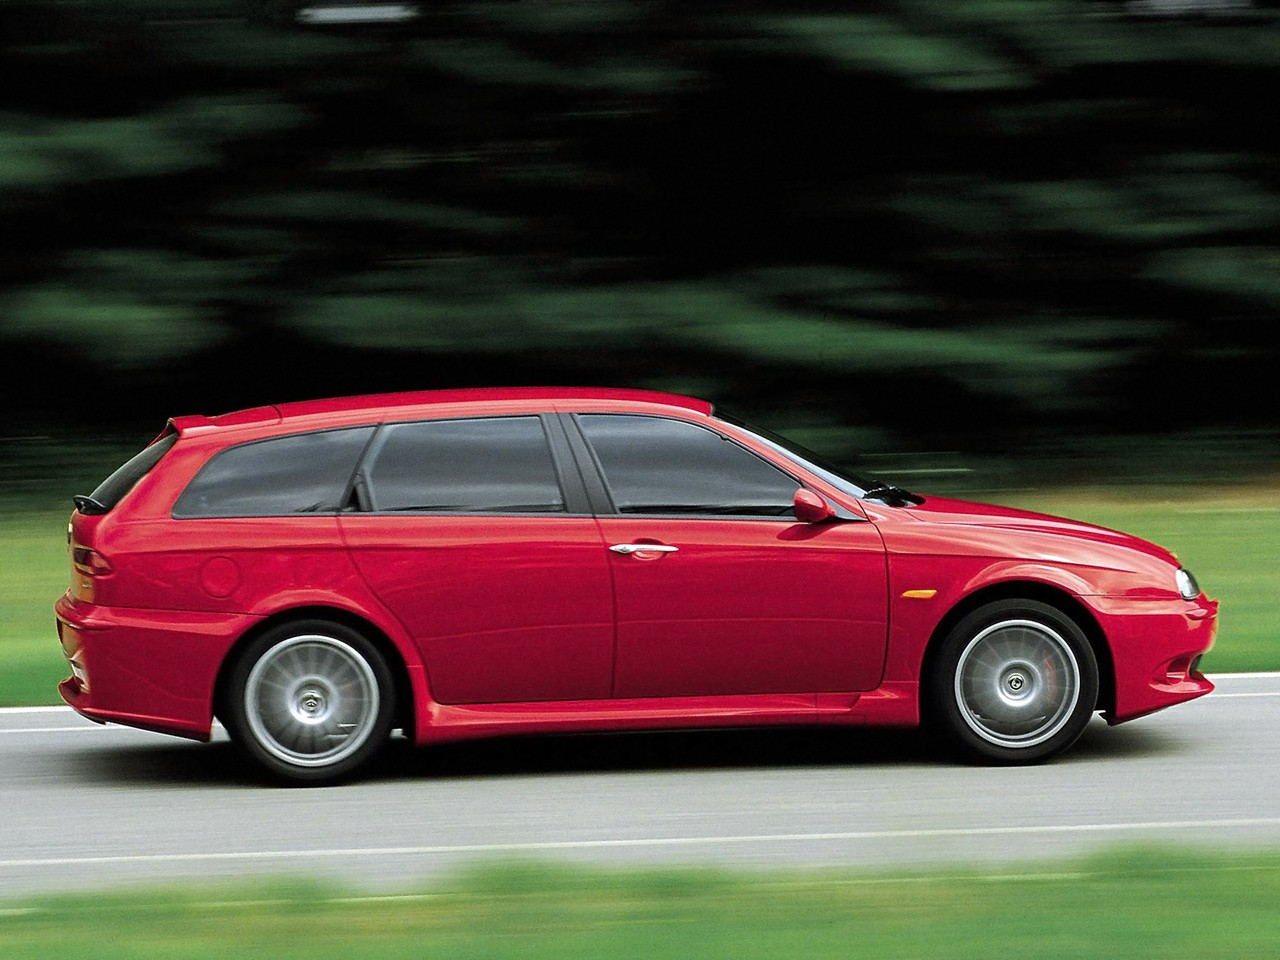 alfa romeo 156 sportwagon gta specs 2002 2003 2004. Black Bedroom Furniture Sets. Home Design Ideas